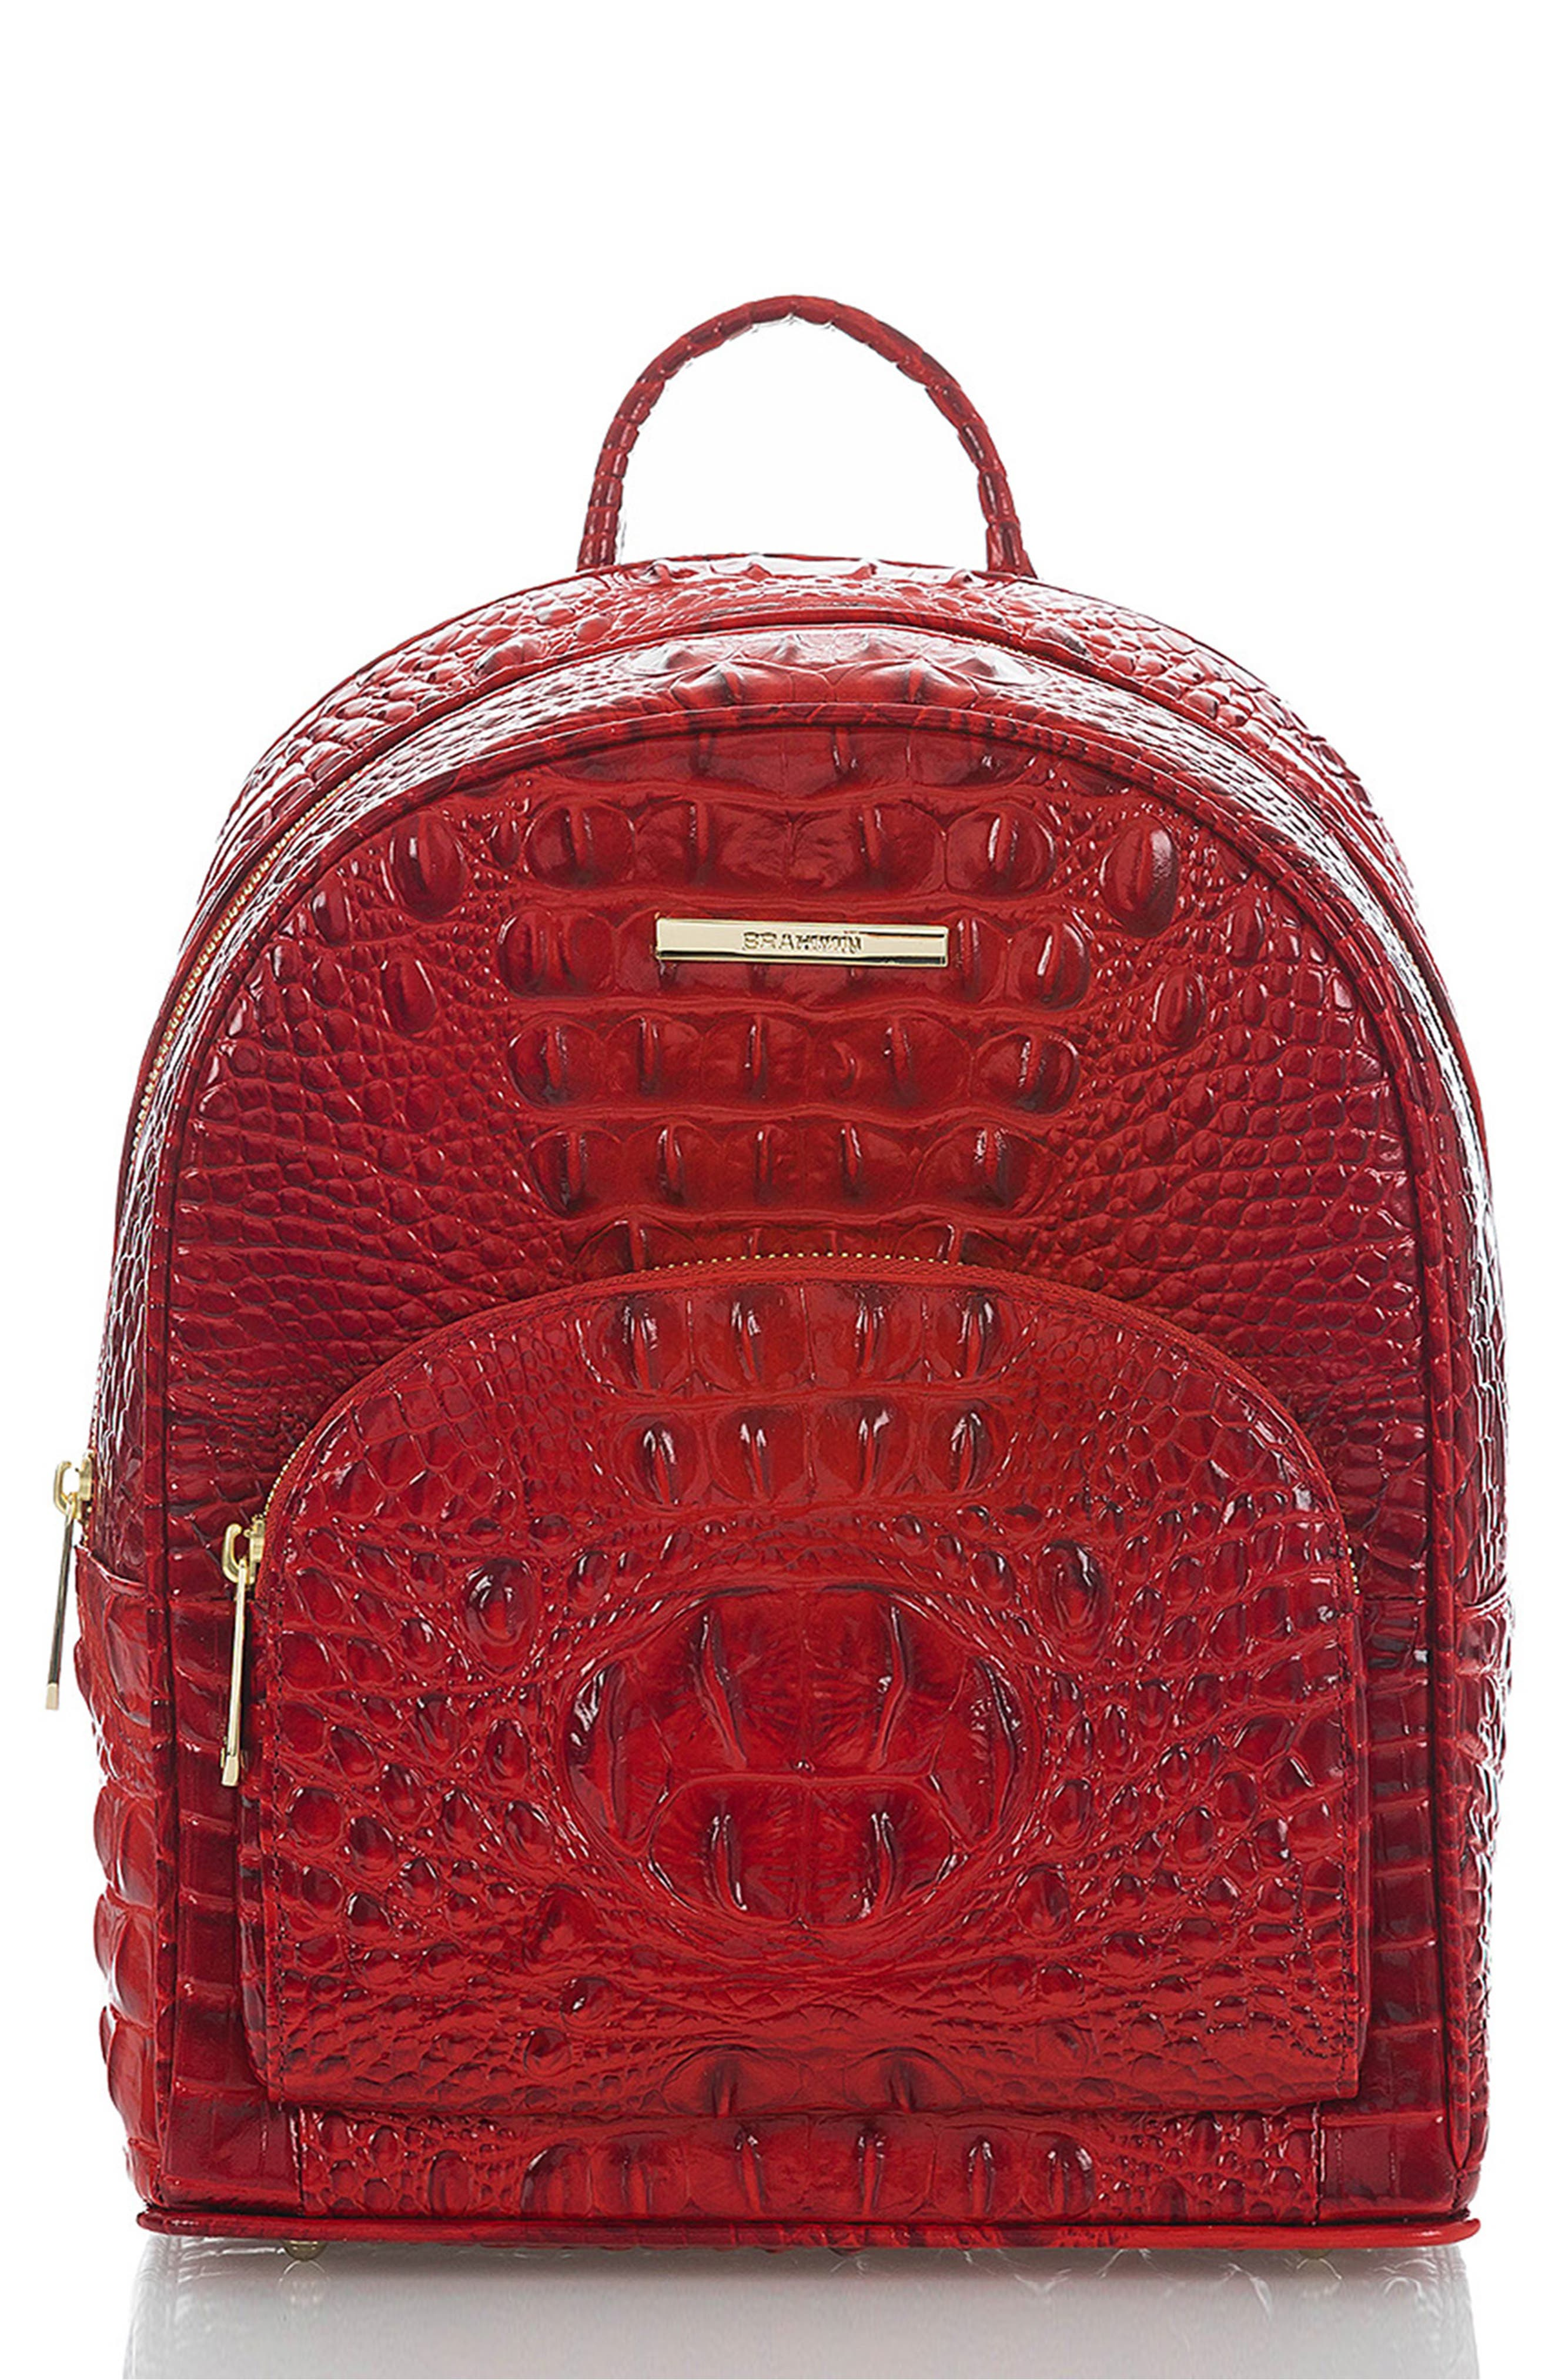 Mini Dartmouth Leather Backpack,                             Main thumbnail 1, color,                             SCARLET